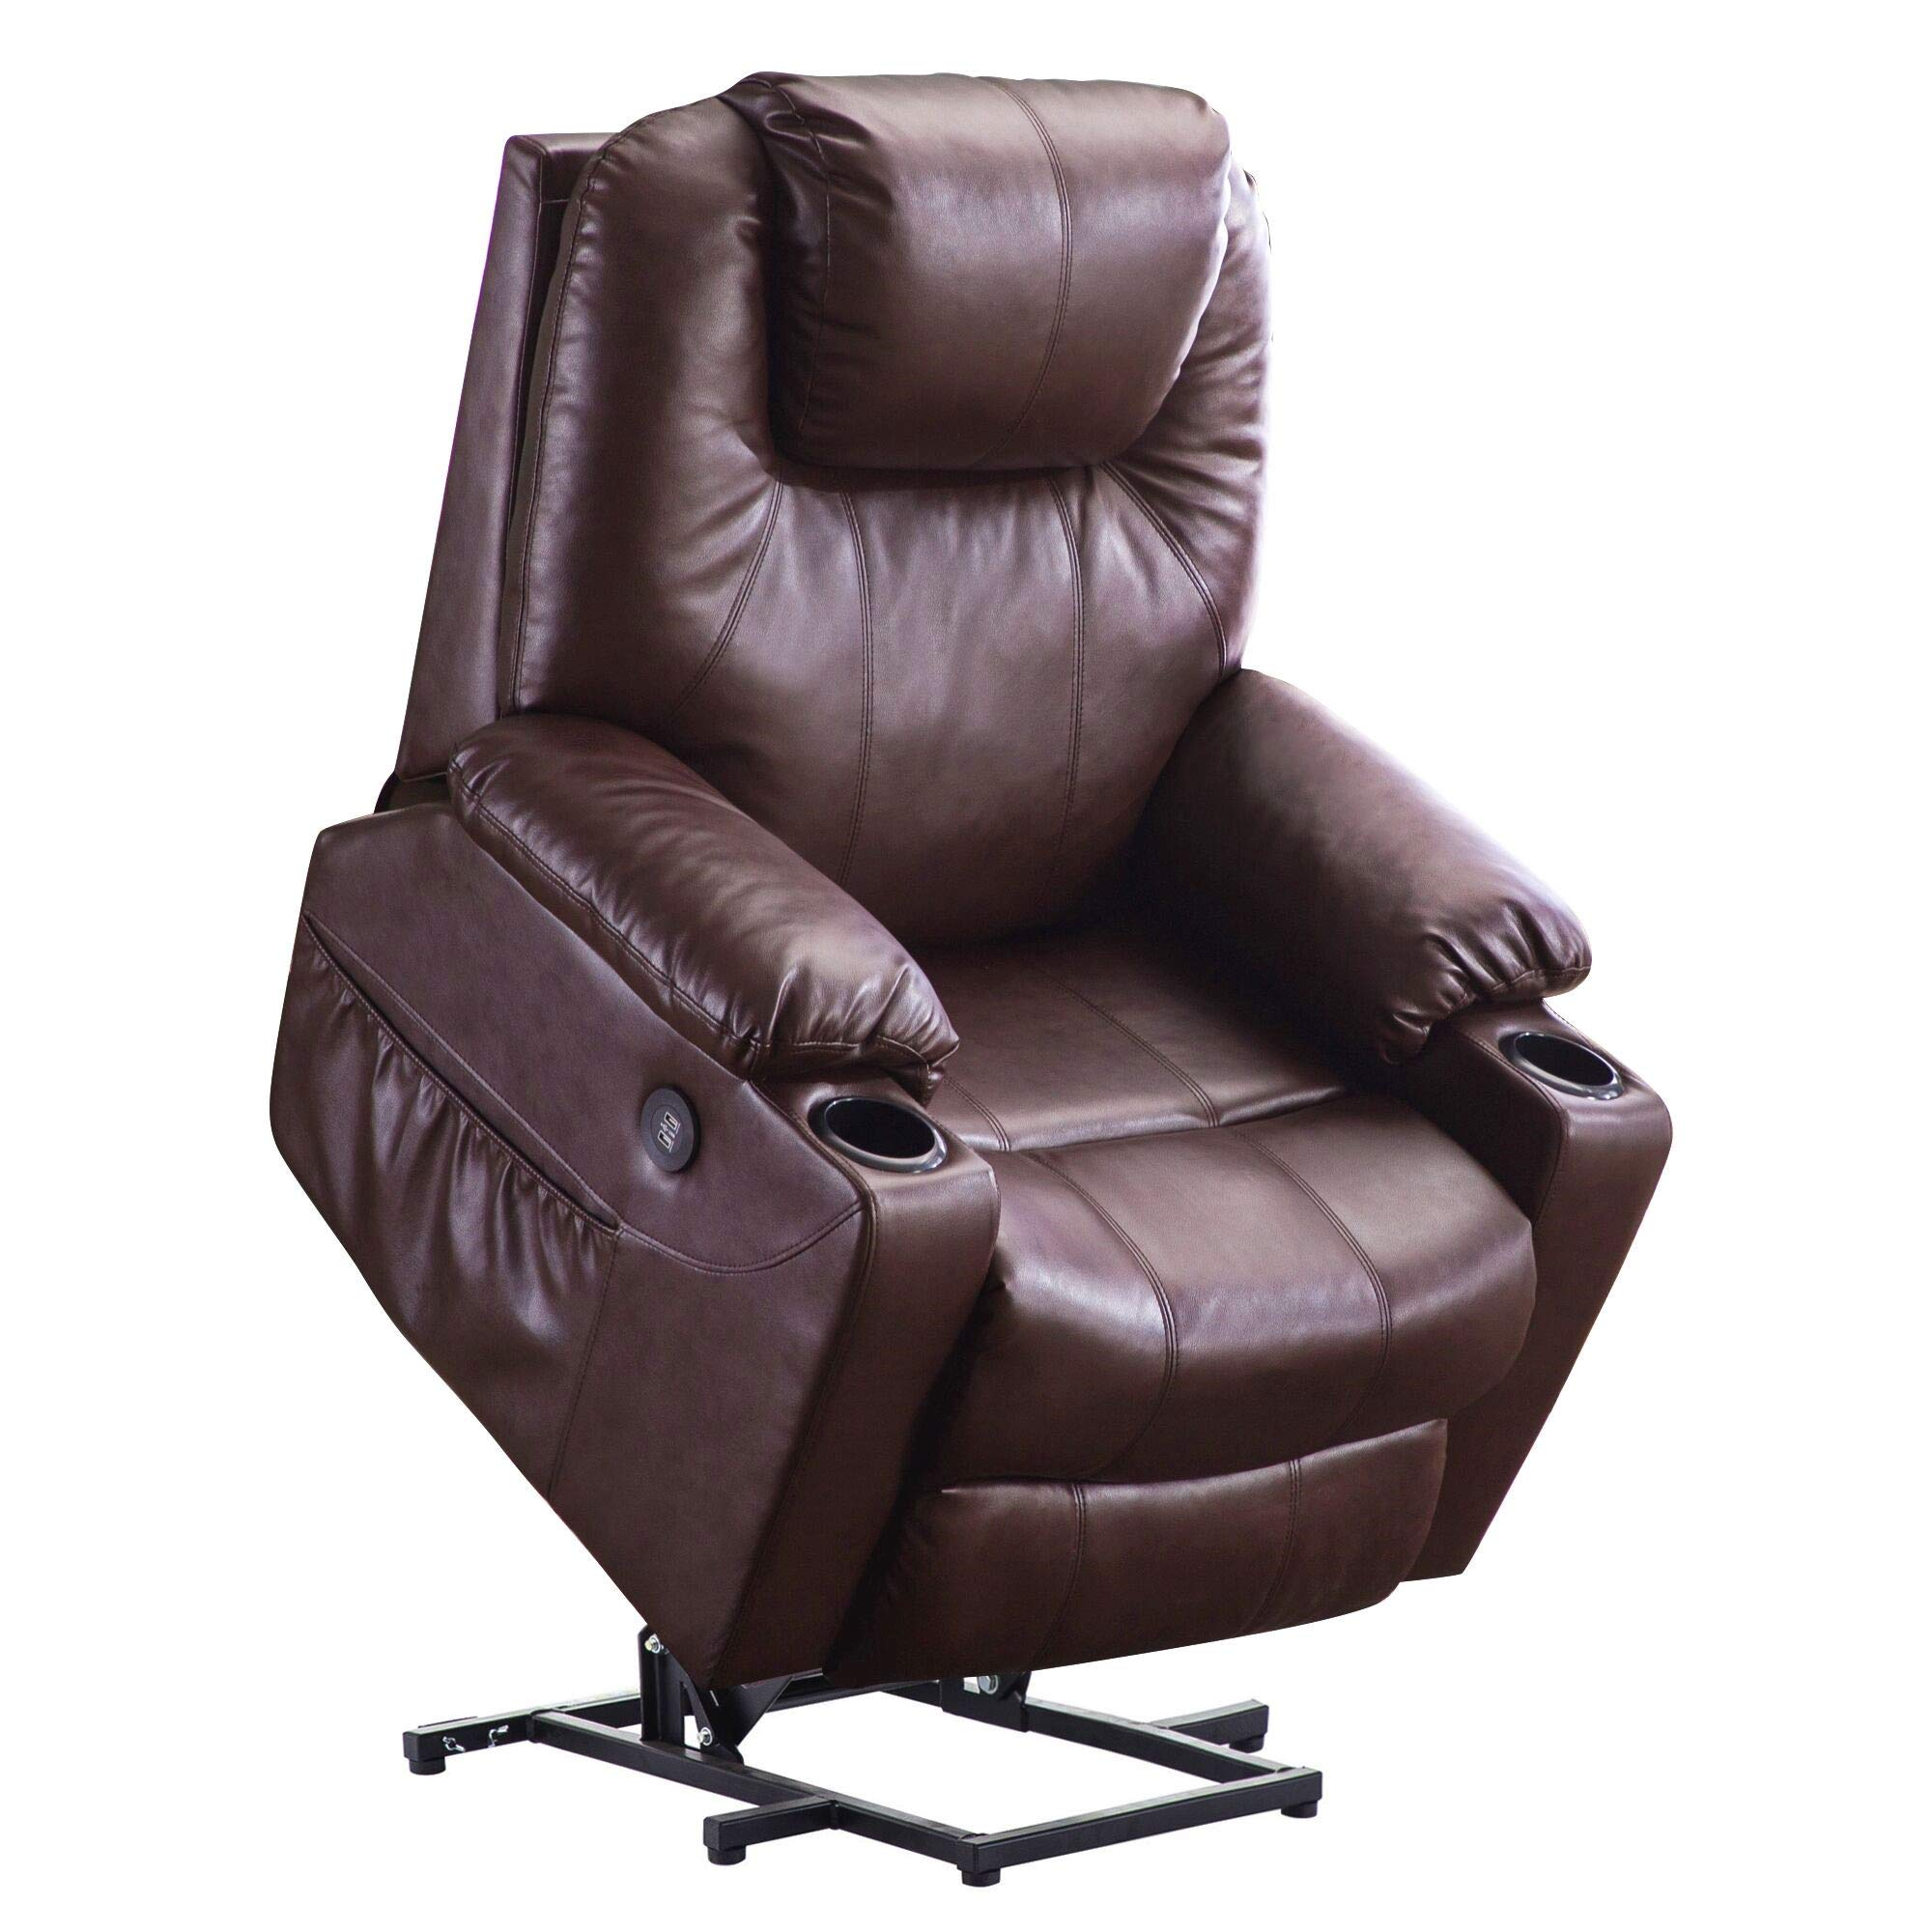 Mcombo Electric Power Lift Recliner Chair Sofa with Massage and Heat for Elderly, 3 Positions,2 Side Pockets and Cup Holders, USB Ports, Faux Leather 7040 (Dark Brown) by MCombo